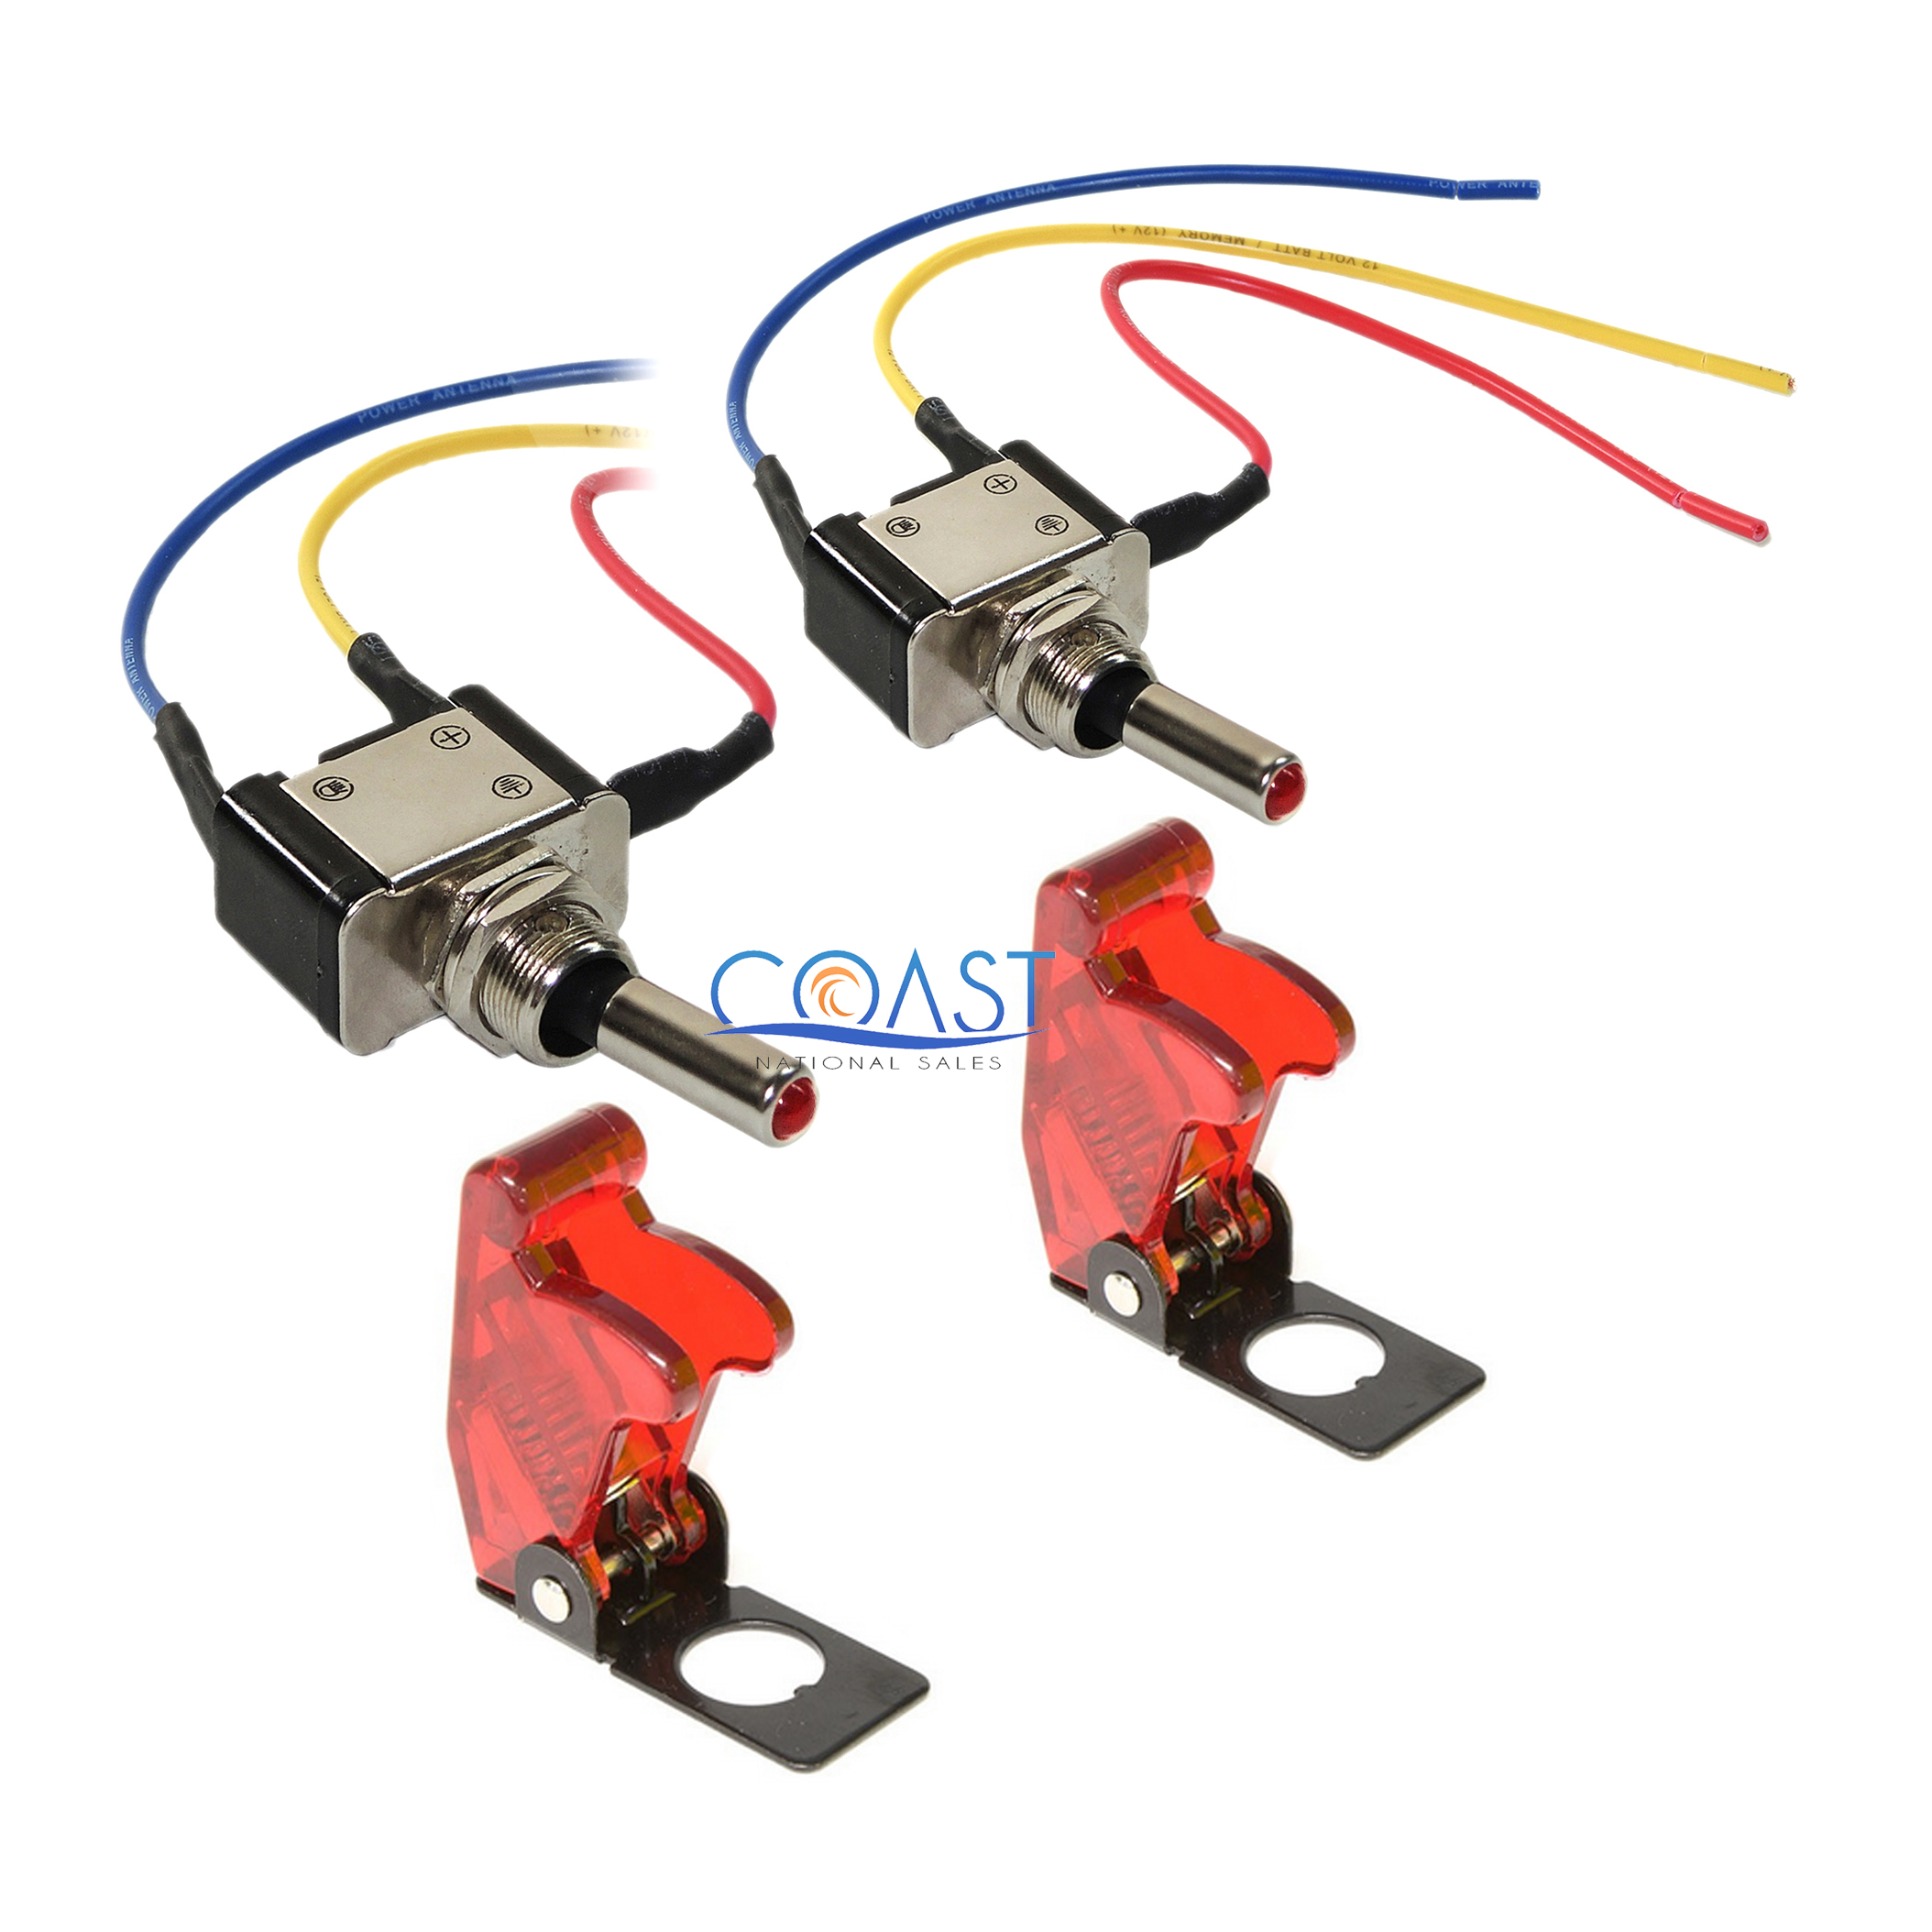 6 wire toggle switch wiring diagram for 220v plug 2x car home heavy duty clear red led metal